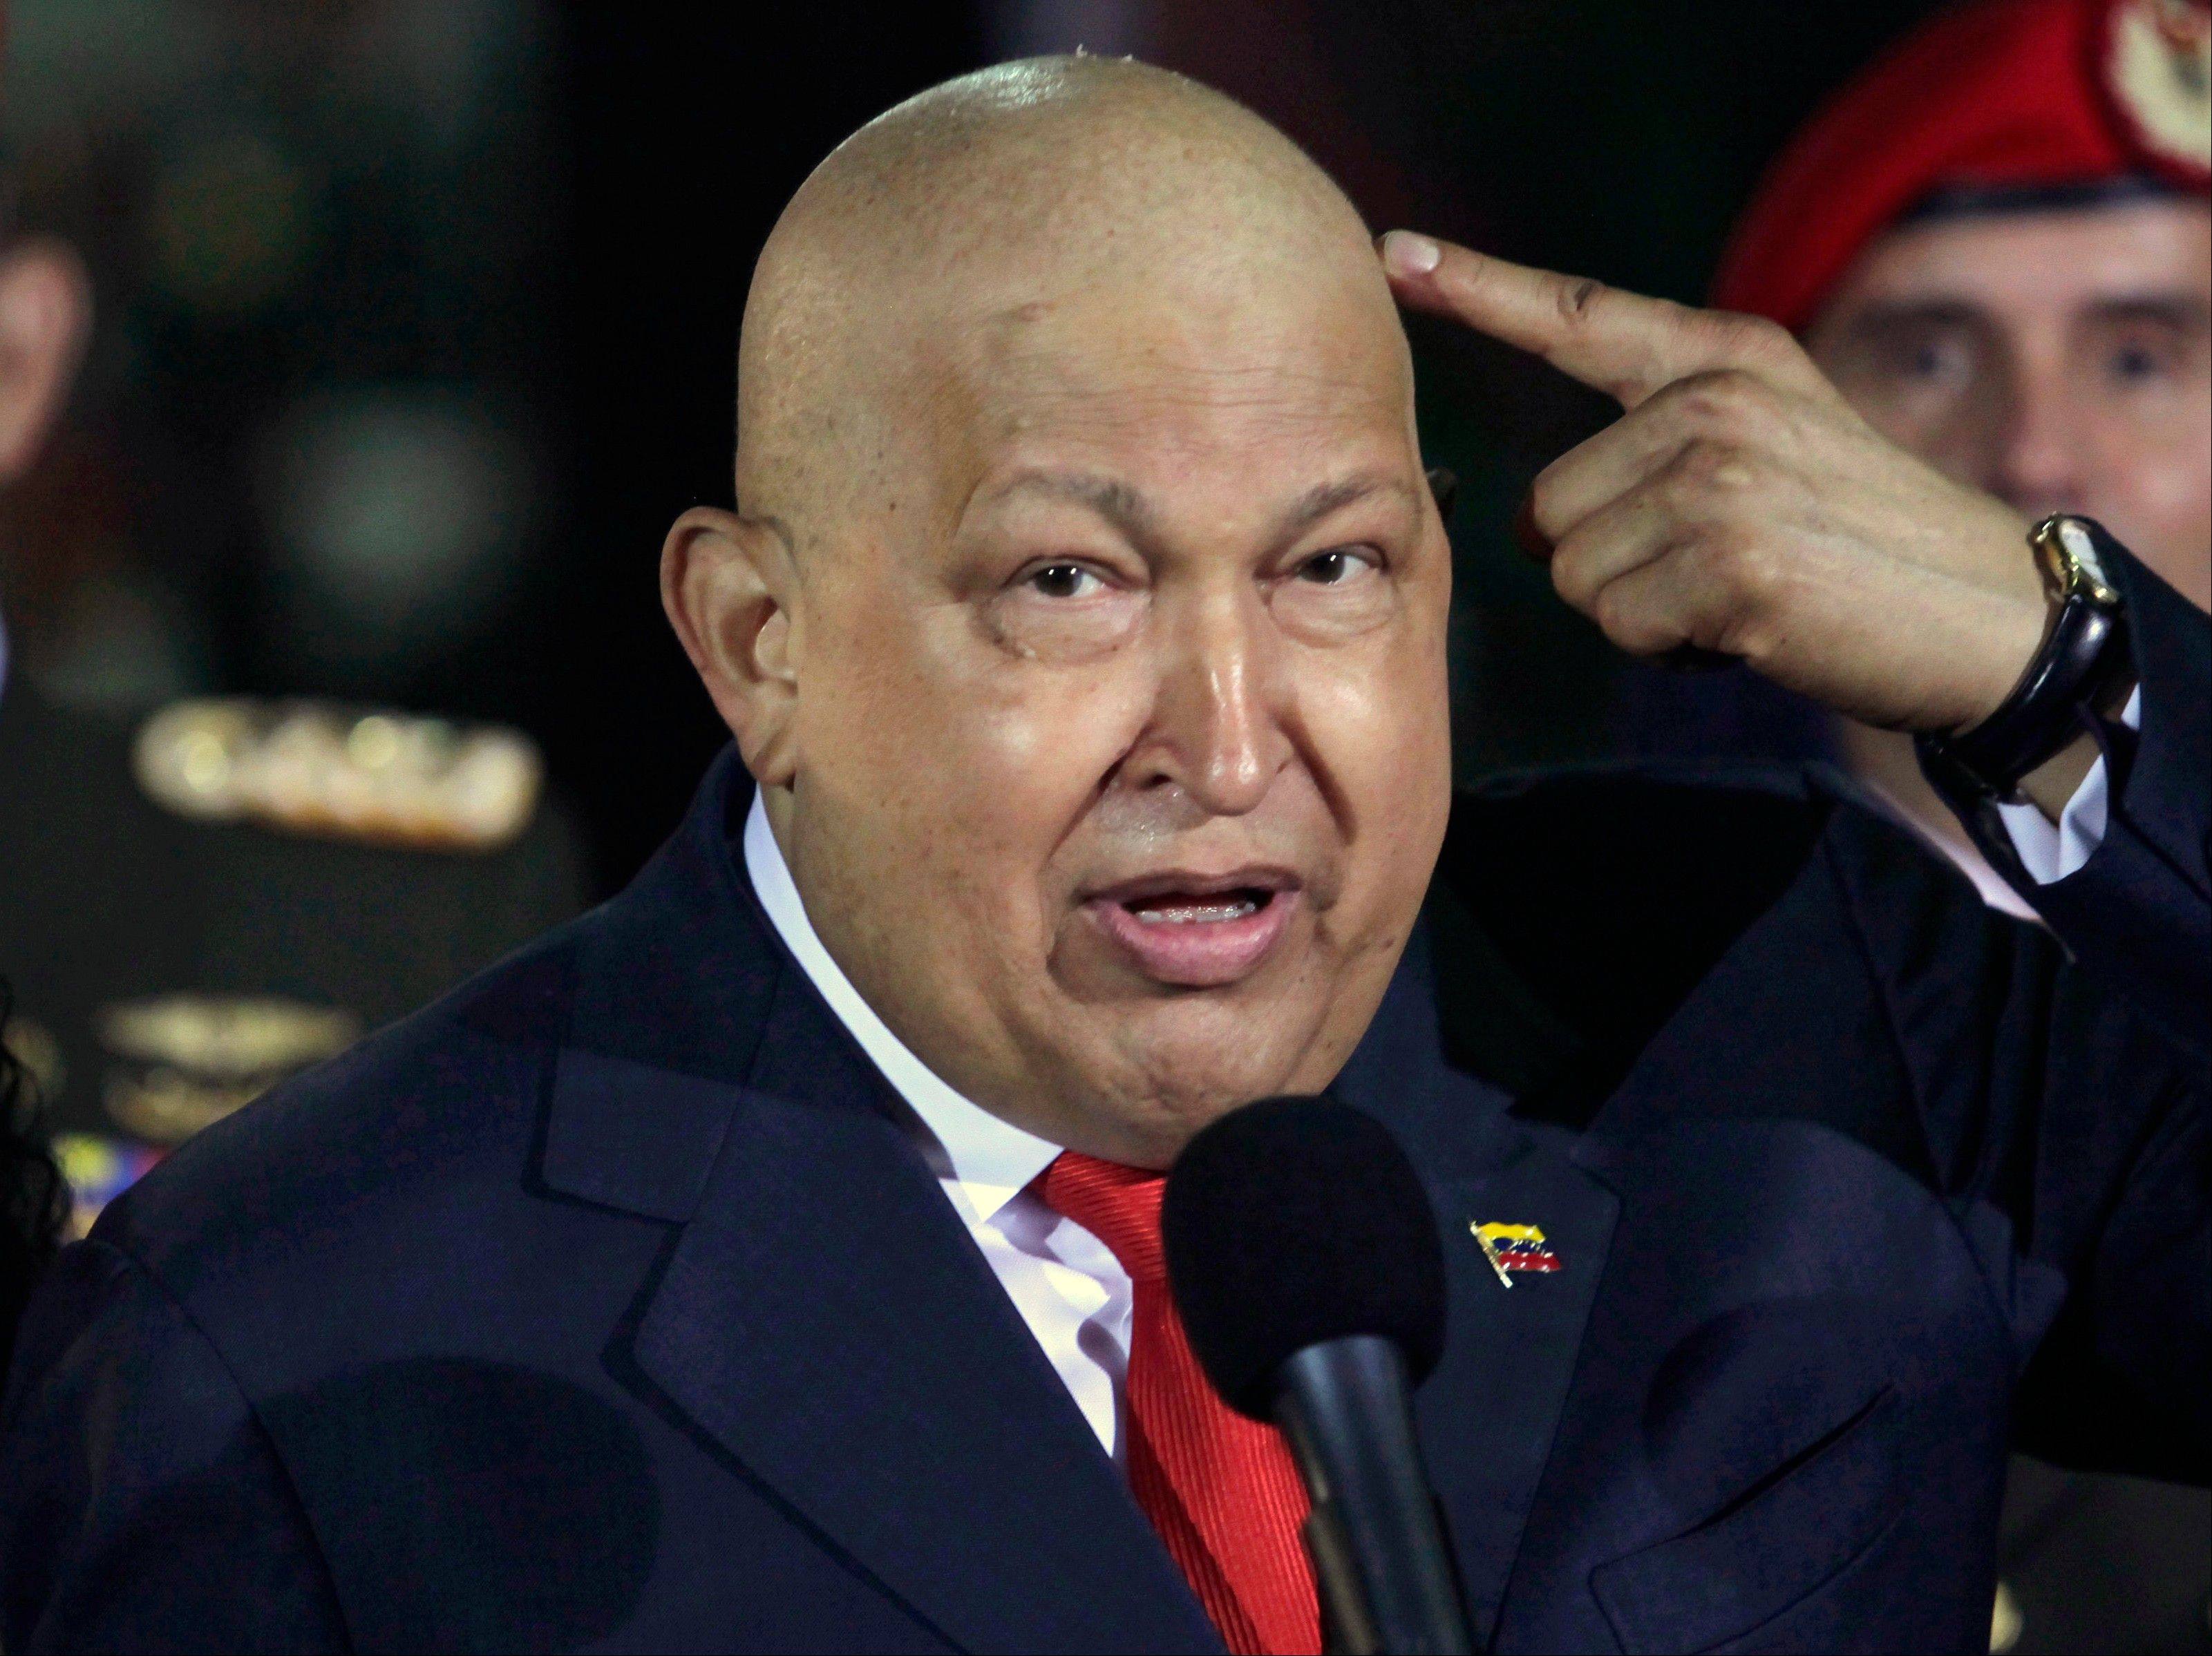 In this Oct. 11, 2011, photo, Venezuela�s President Hugo Chavez points at his head to show his hair has started to grow back after his last round of chemotherapy at Miraflores presidential palace in Caracas, Venezuela. Chavez was reported to have died Tuesday.